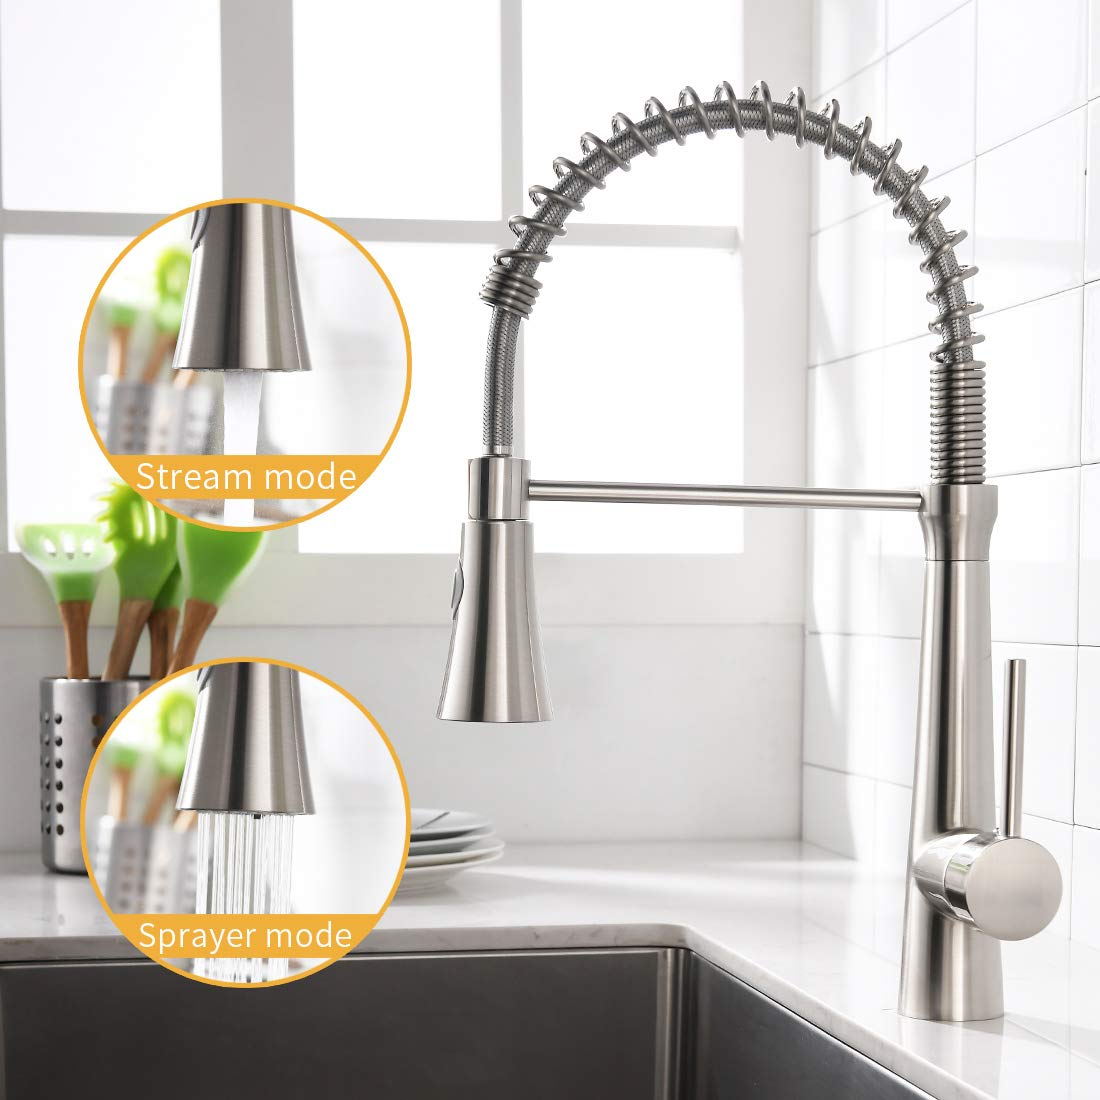 WANMAI Spring Pull Down Kitchen Faucet, Commercial Single Handle Kitchen Sink Faucets with Dual-Functions Pull Down Sprayer, Brushed Nickel